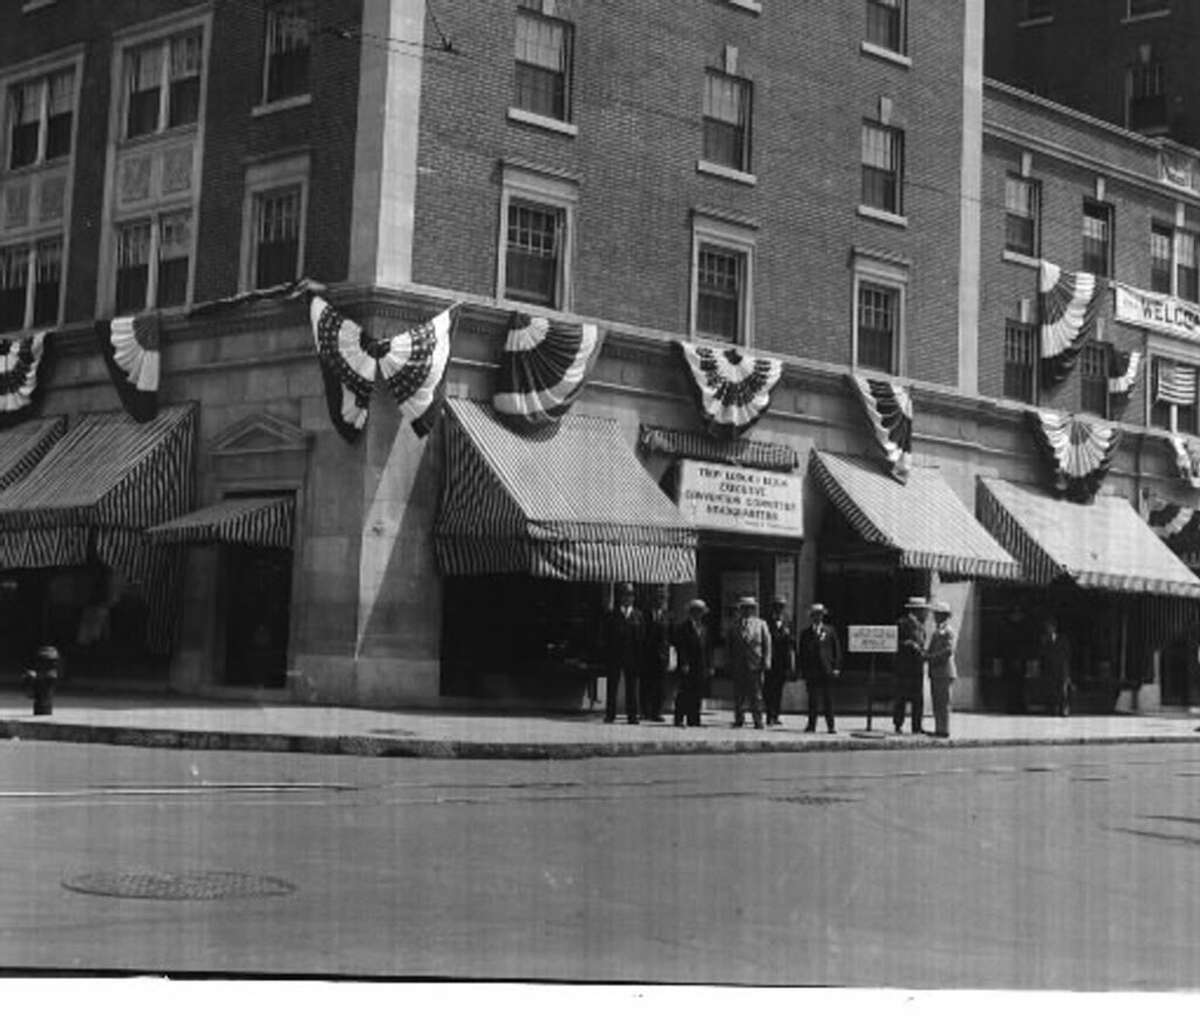 1927. Hendrick Hudson Hotel in Troy, as seen on June 6, 1927. In March 1966, fire routed about 100 guests from the seven-story hotel, causing heavy damage to five rooms on the second floor. (Times Union archive)